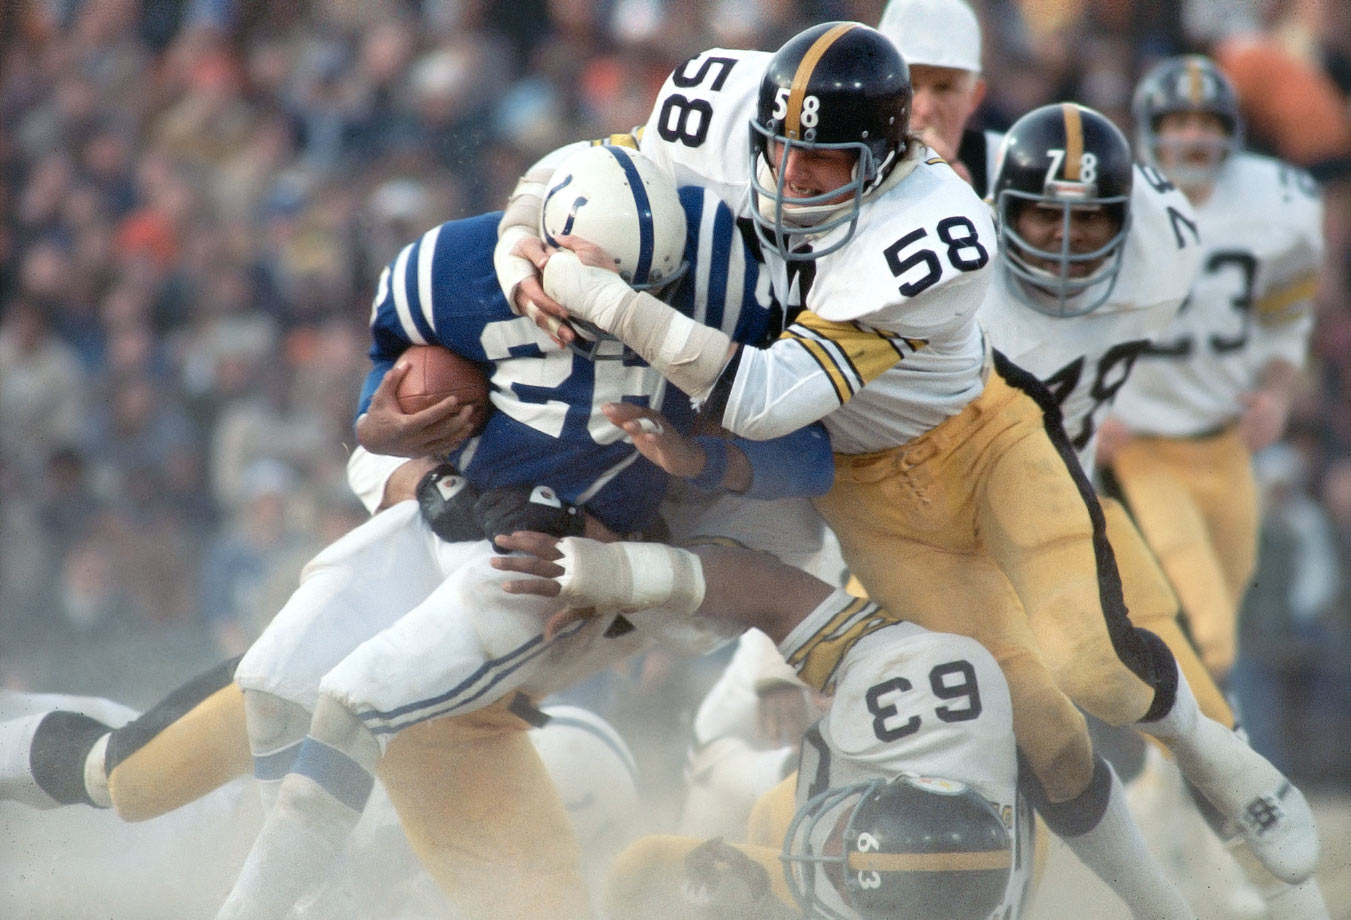 Lambert is best-known for his menacing, toothless glare, but he was also the key to Bud Carson's defensive schemes in the 1970s, when the Steel Curtain reigned supreme. Lambert was light, fast and utterly fearless, and he played every down with a frightening ferocity, but he was also one of the smartest linebackers ever to take the field.